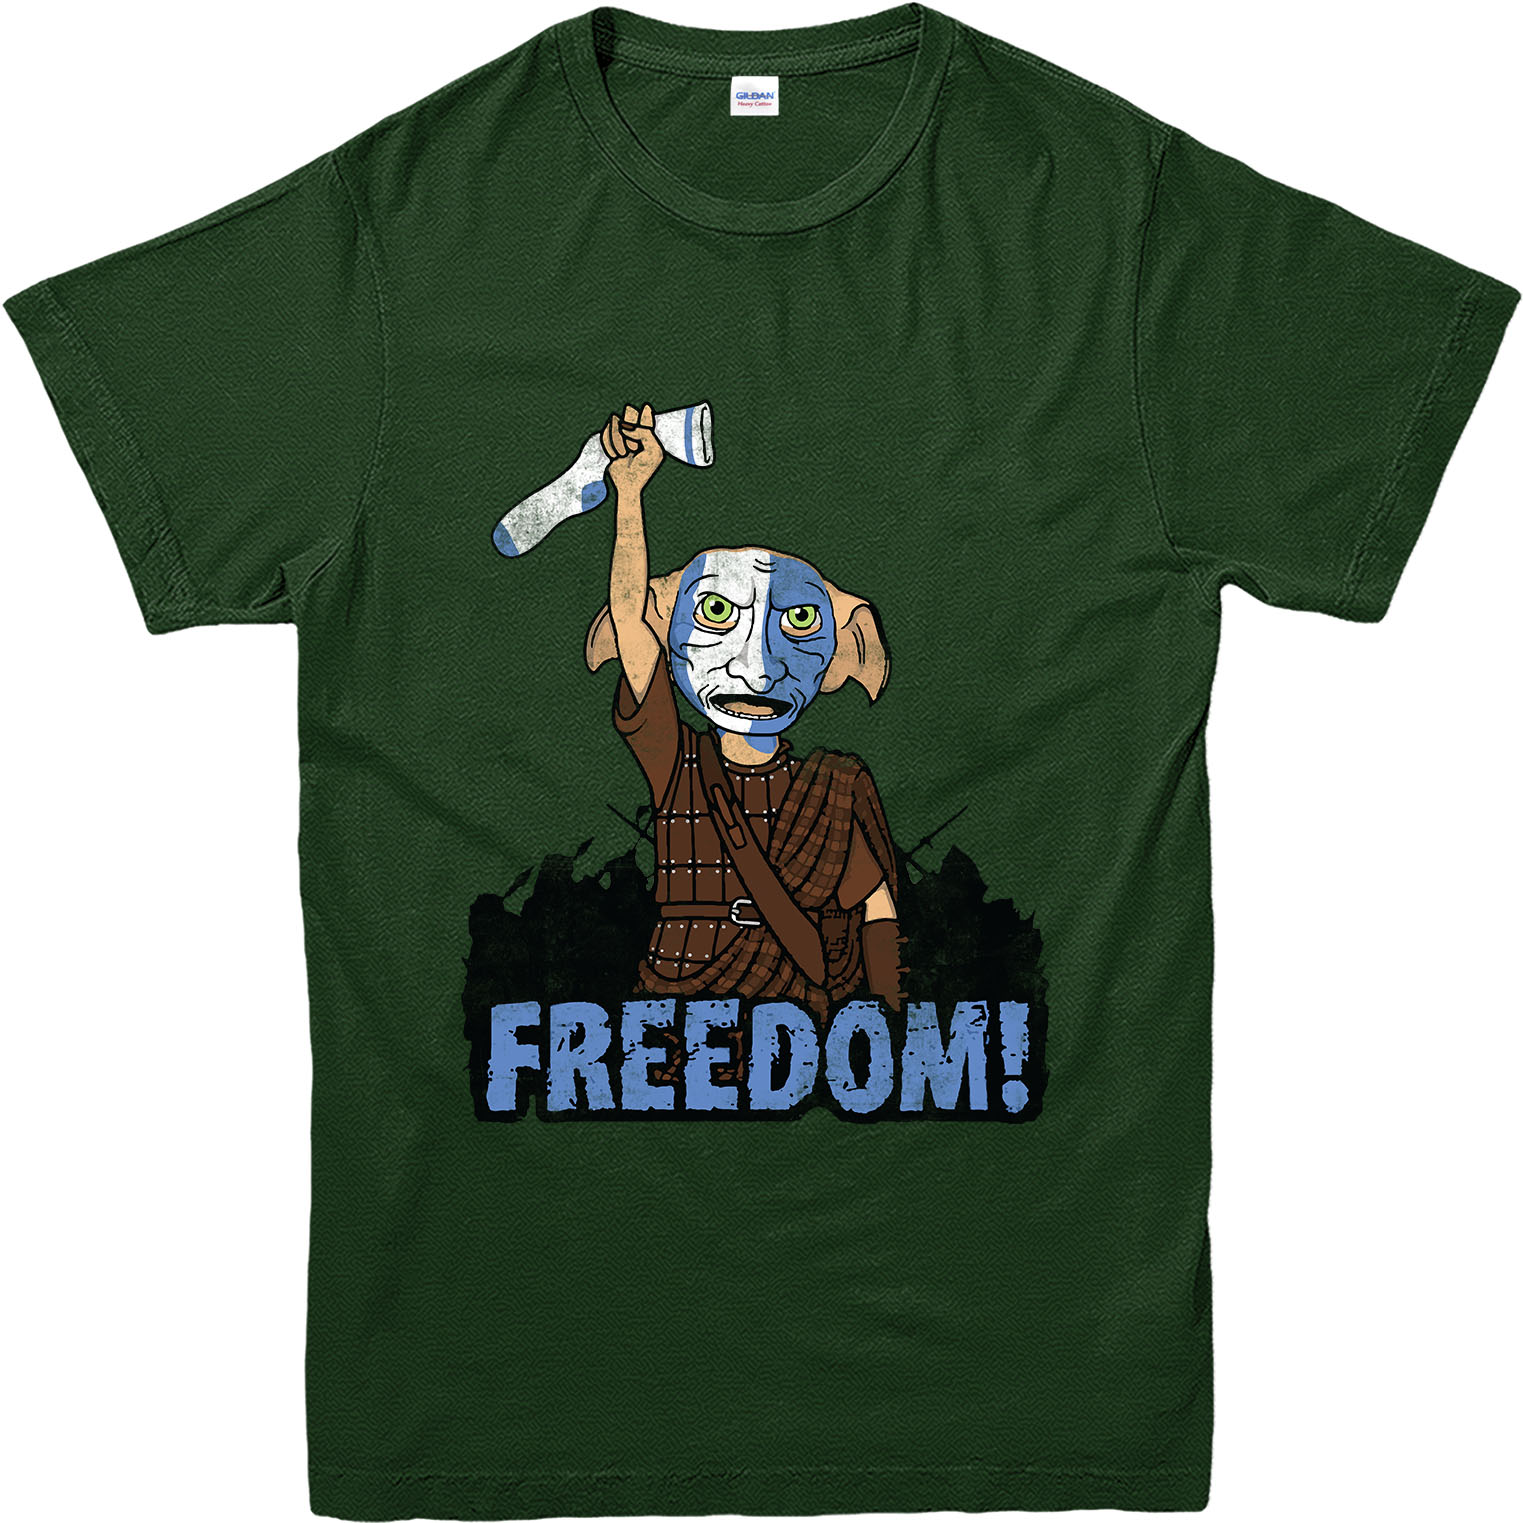 Harry potter t shirt dobby freedom t shirt inspired for I like insects shirt